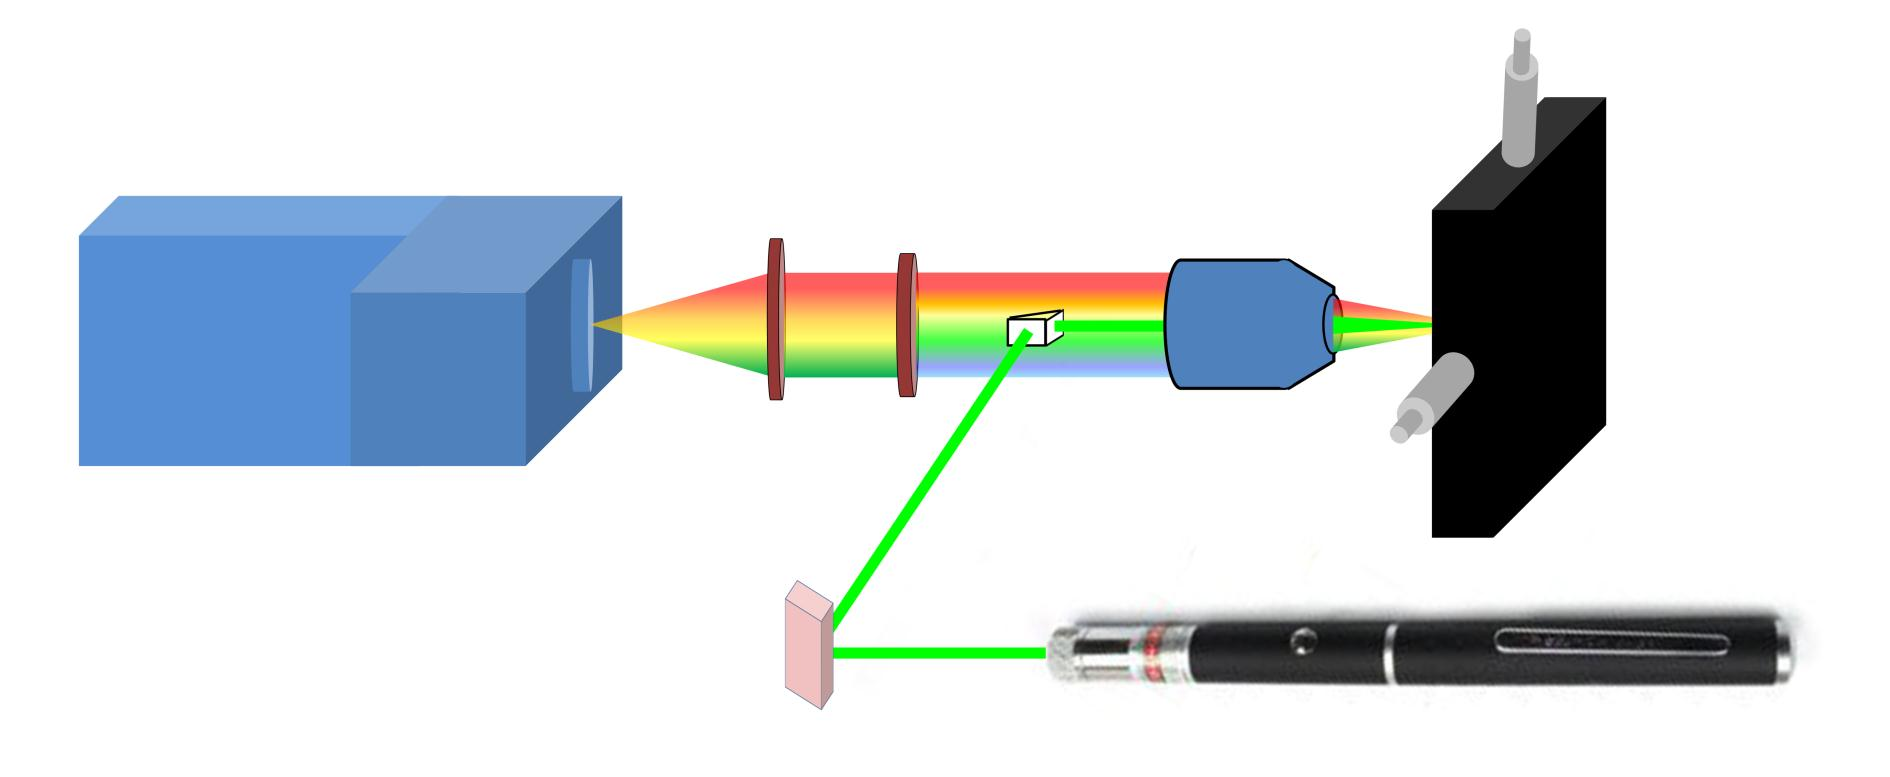 laser pointer schematic with 2012 10 Explosives Laser Pointer Dangerous Chemicals on Connecting Laser Diode Driver 7805 Voltage Regulator 69617 3 furthermore Adding Ttl Input Ddl Driver 94052 further Block Diagram Of Laser Printer additionally Diy Homemade Laser Diode Driver 26339 29 also Laser Driver Can Done Rog8811 87507.